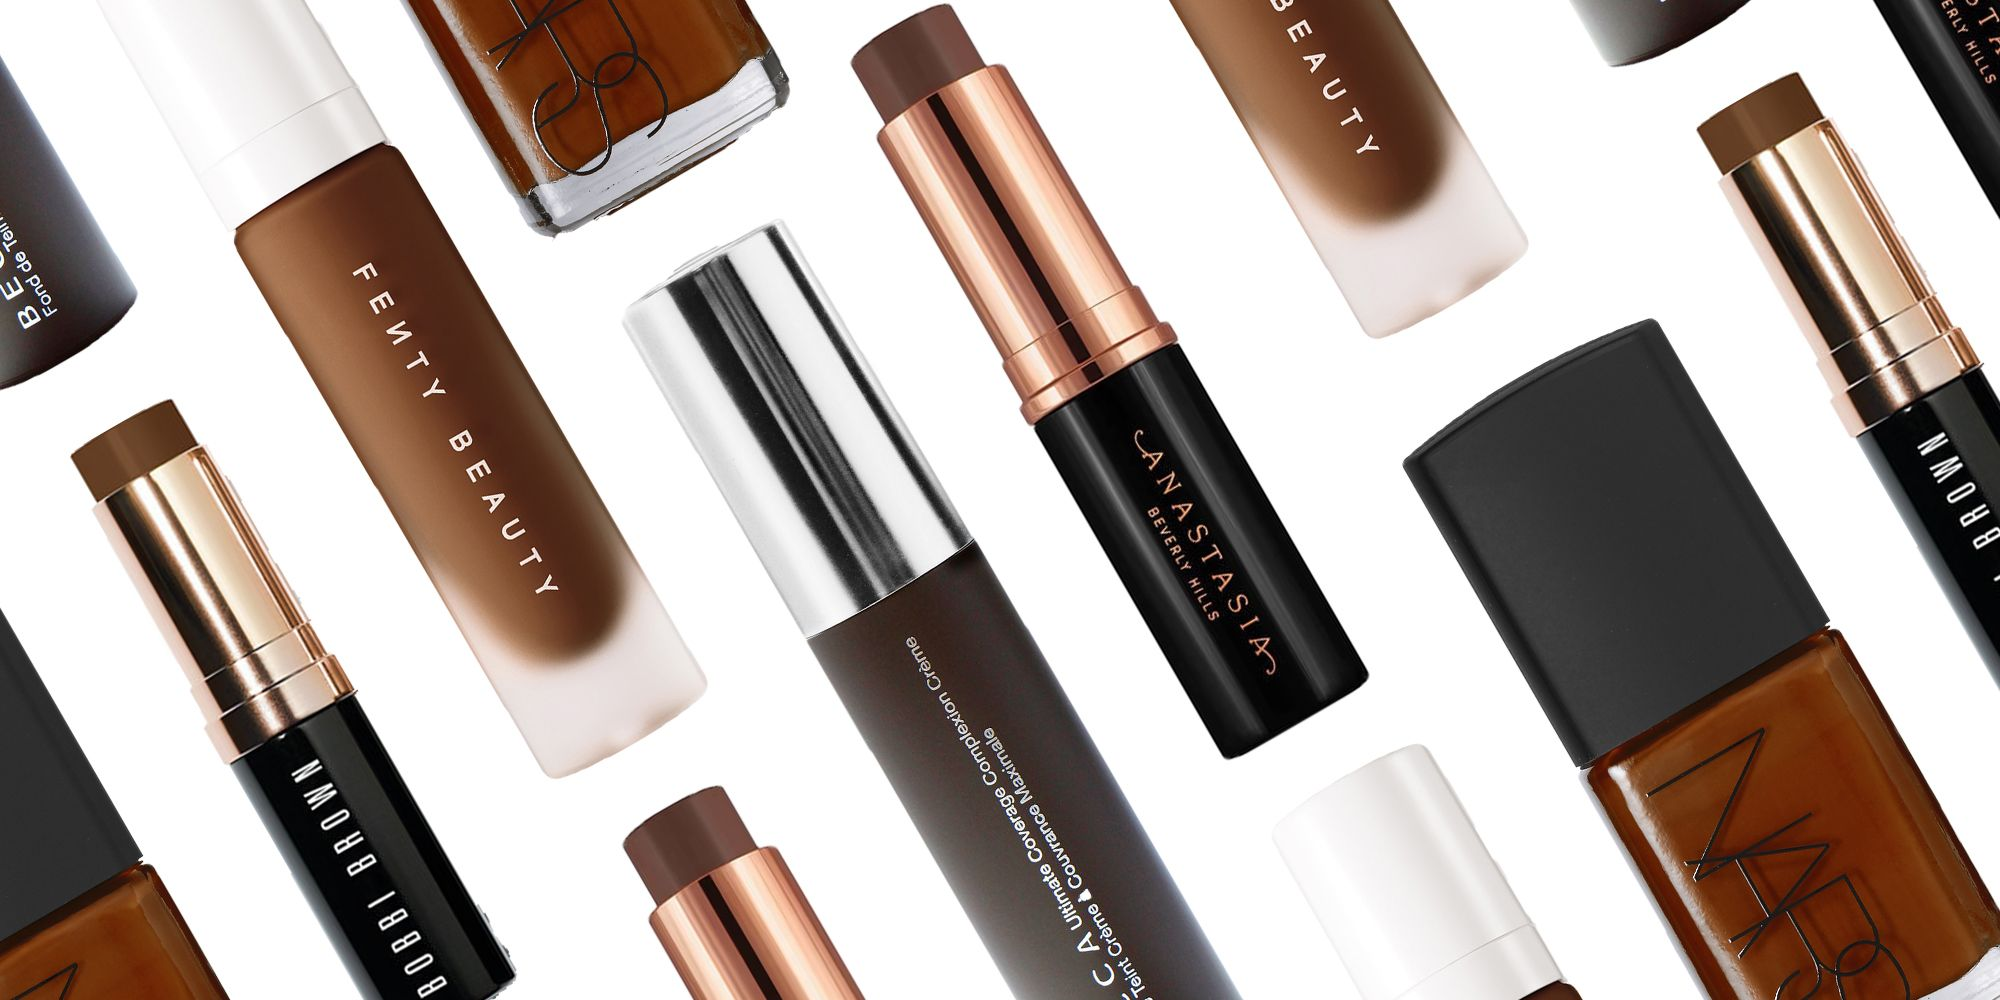 13 Foundations That Look Epic On Darker Skin Tones